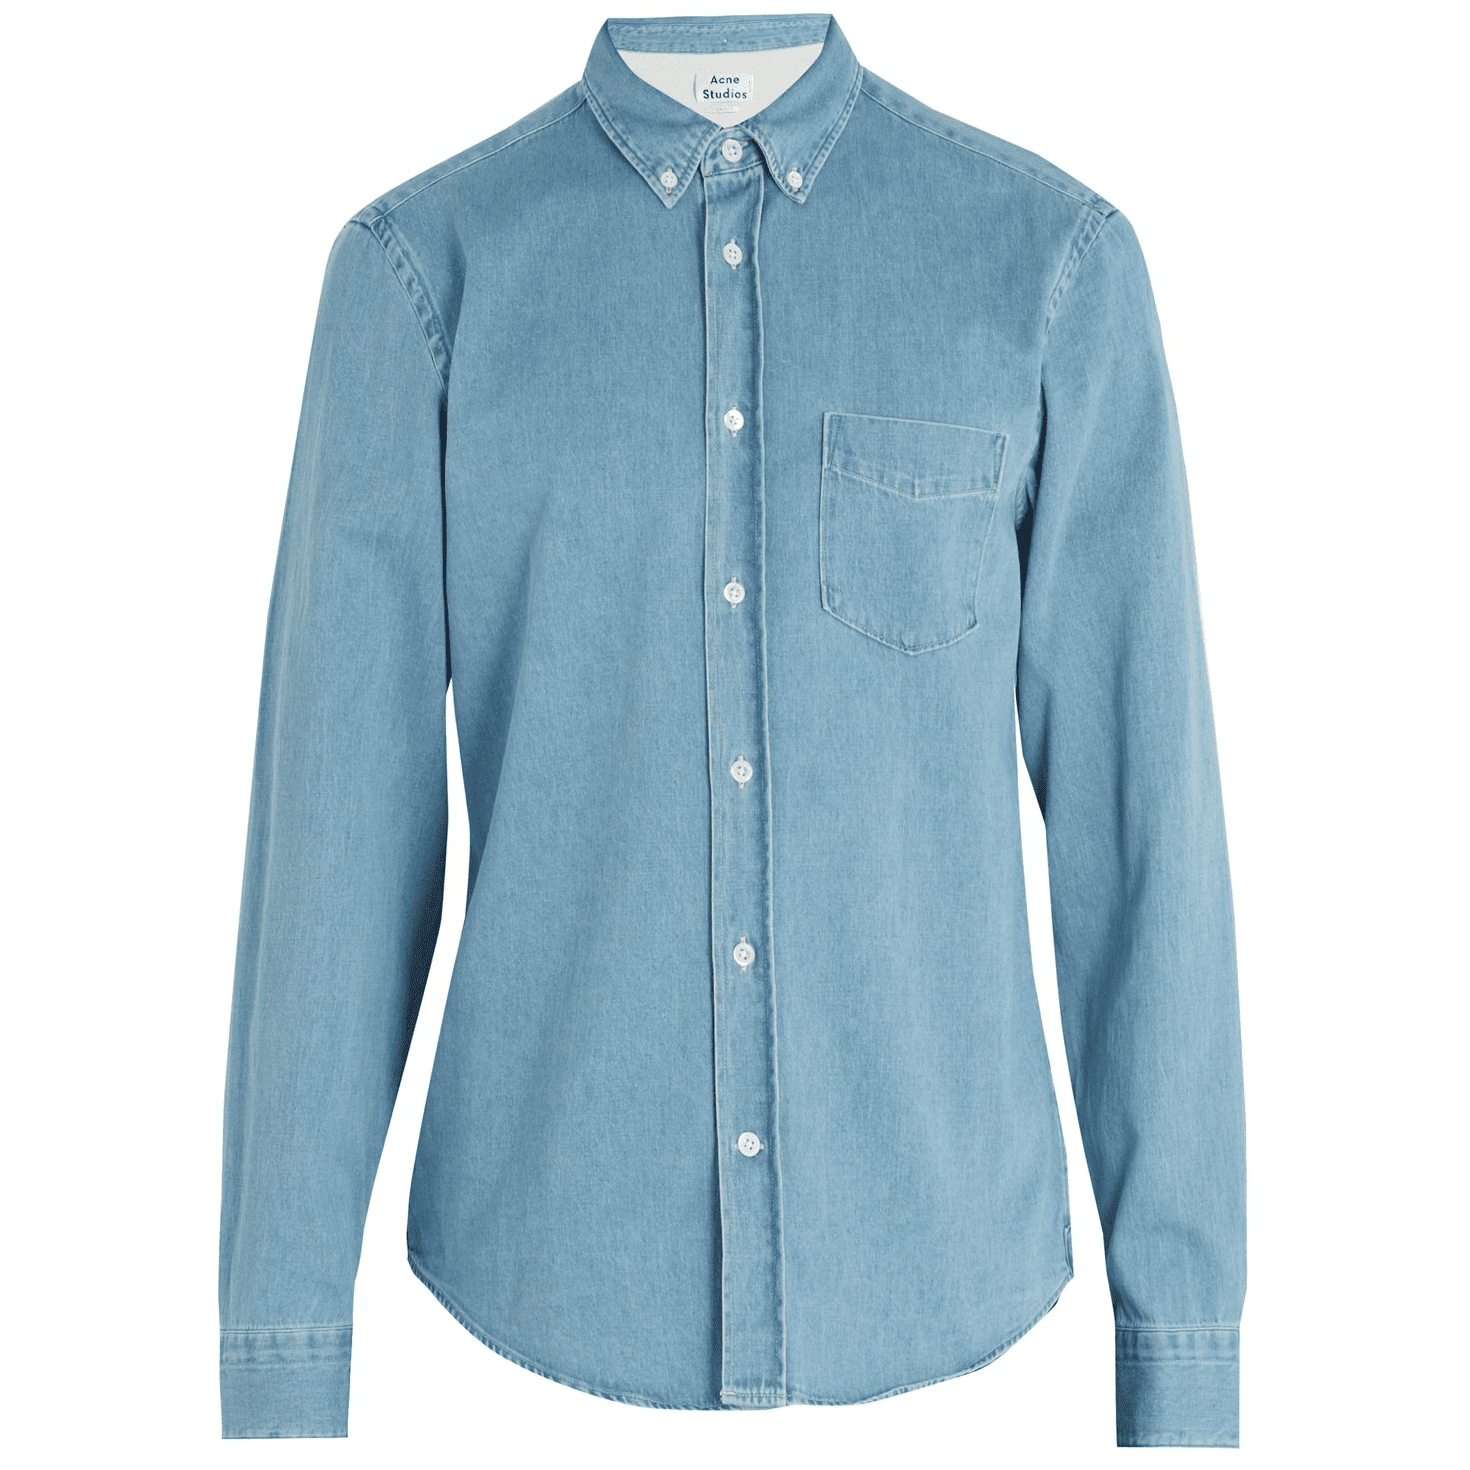 80778e9540 Acne Studios Isherwood Den Cotton-Denim Shirt in Light-Blue, £170 at  MATCHES FASHION >